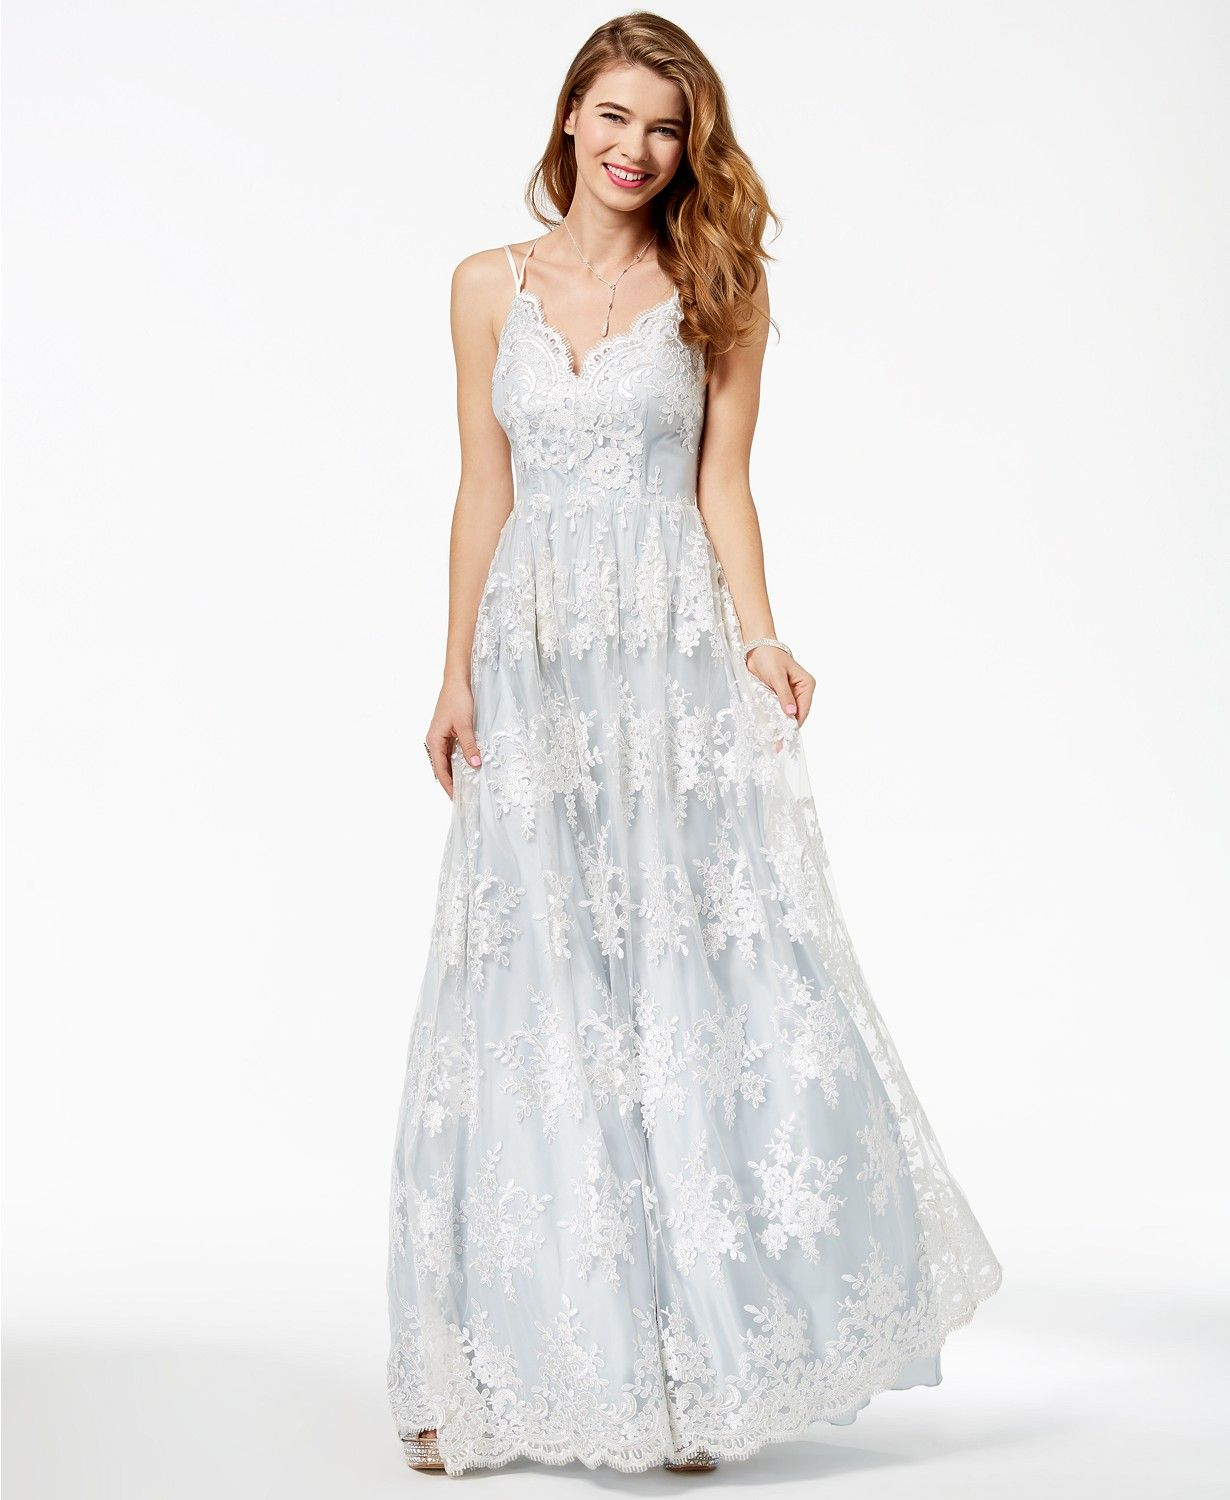 Say yes to the prom juniorsu embroideredlace gown created for